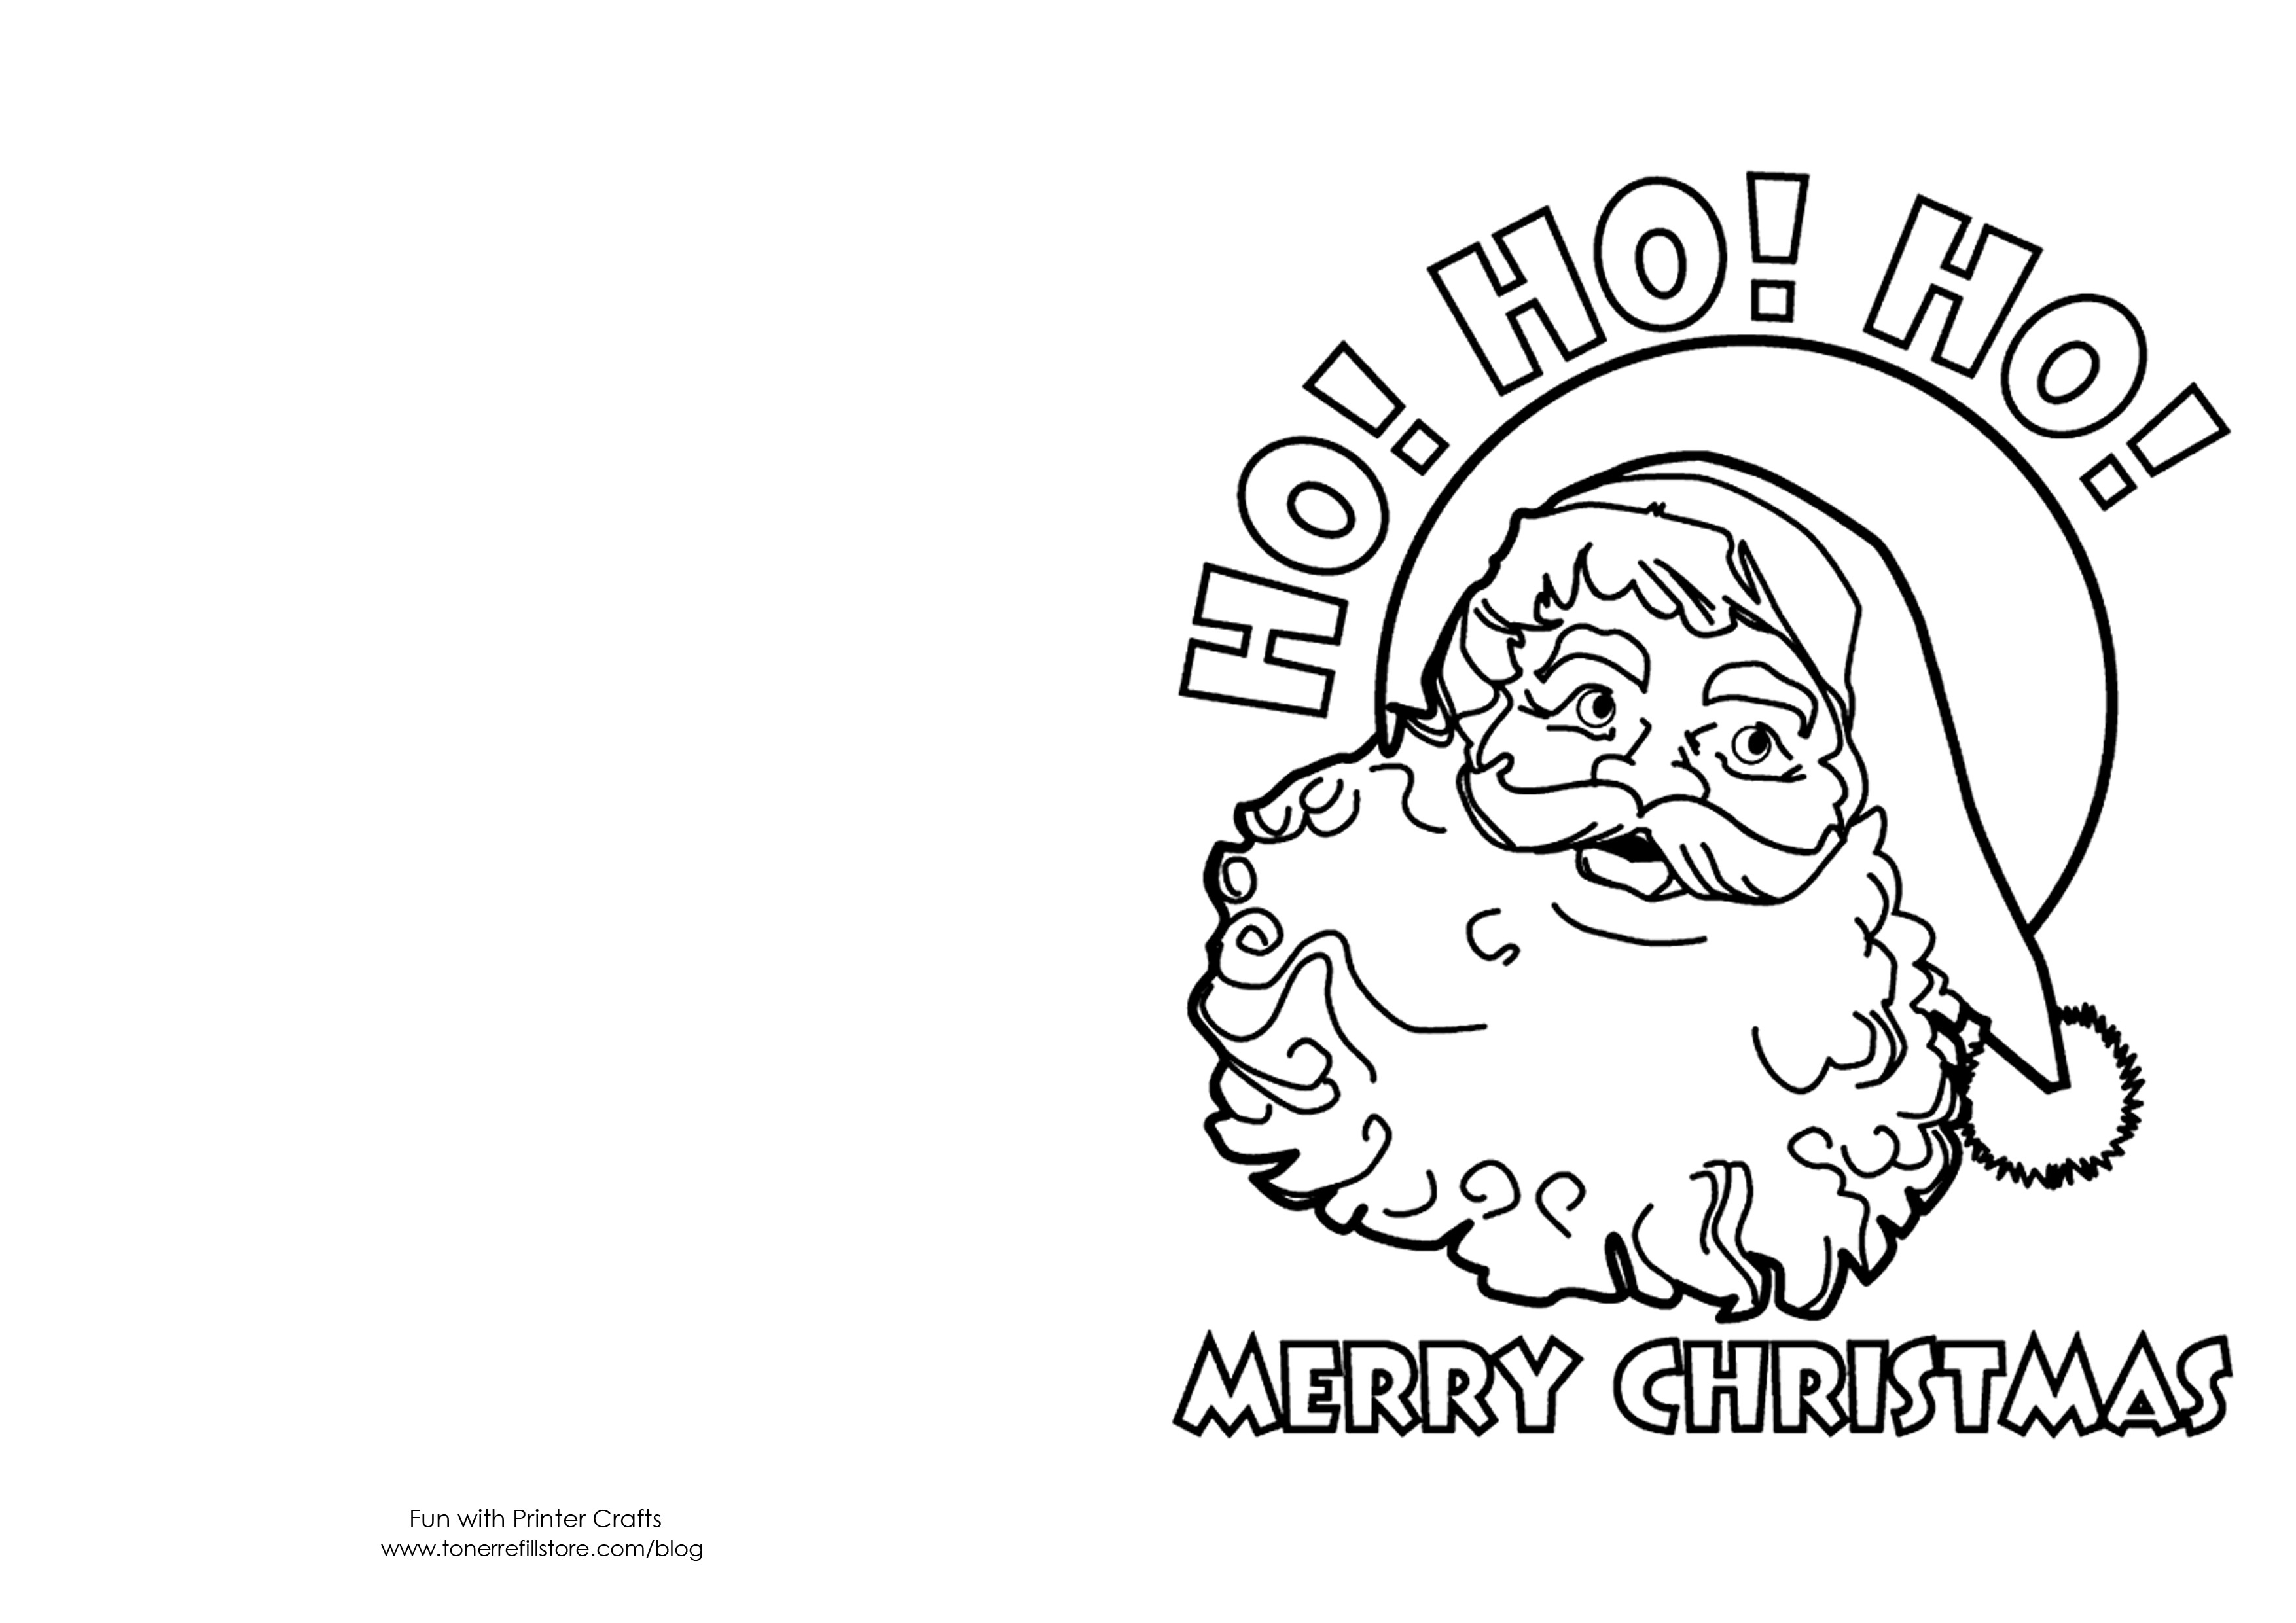 Free Printable Christmas Cards To Color | Presidencycollegekolkata - Free Printable Christmas Cards To Color